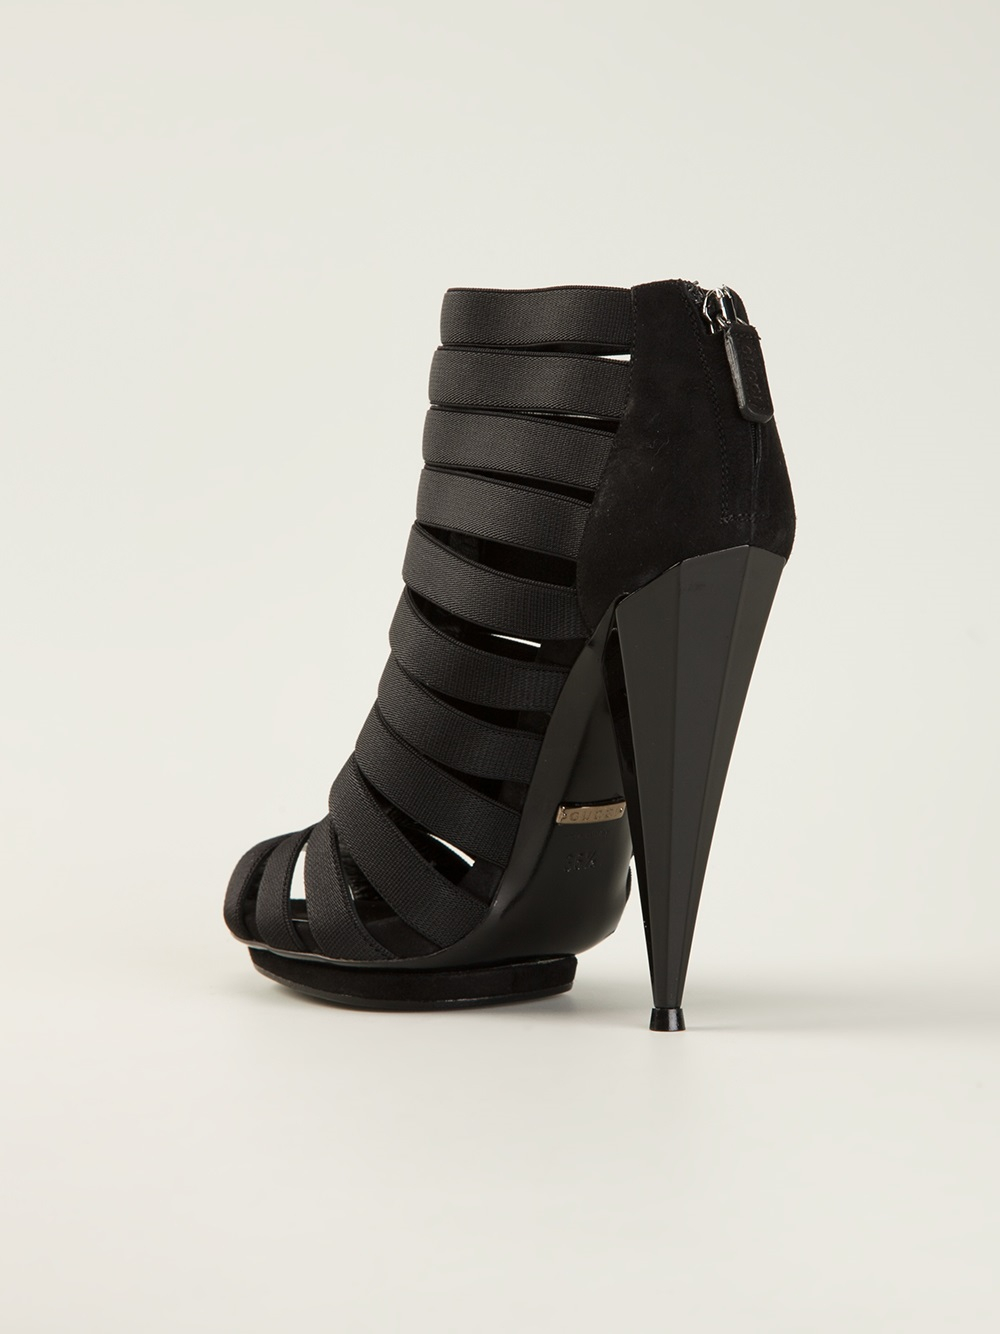 0e09e2bd6200 Lyst - Gucci Cage Strappy Sandals in Black